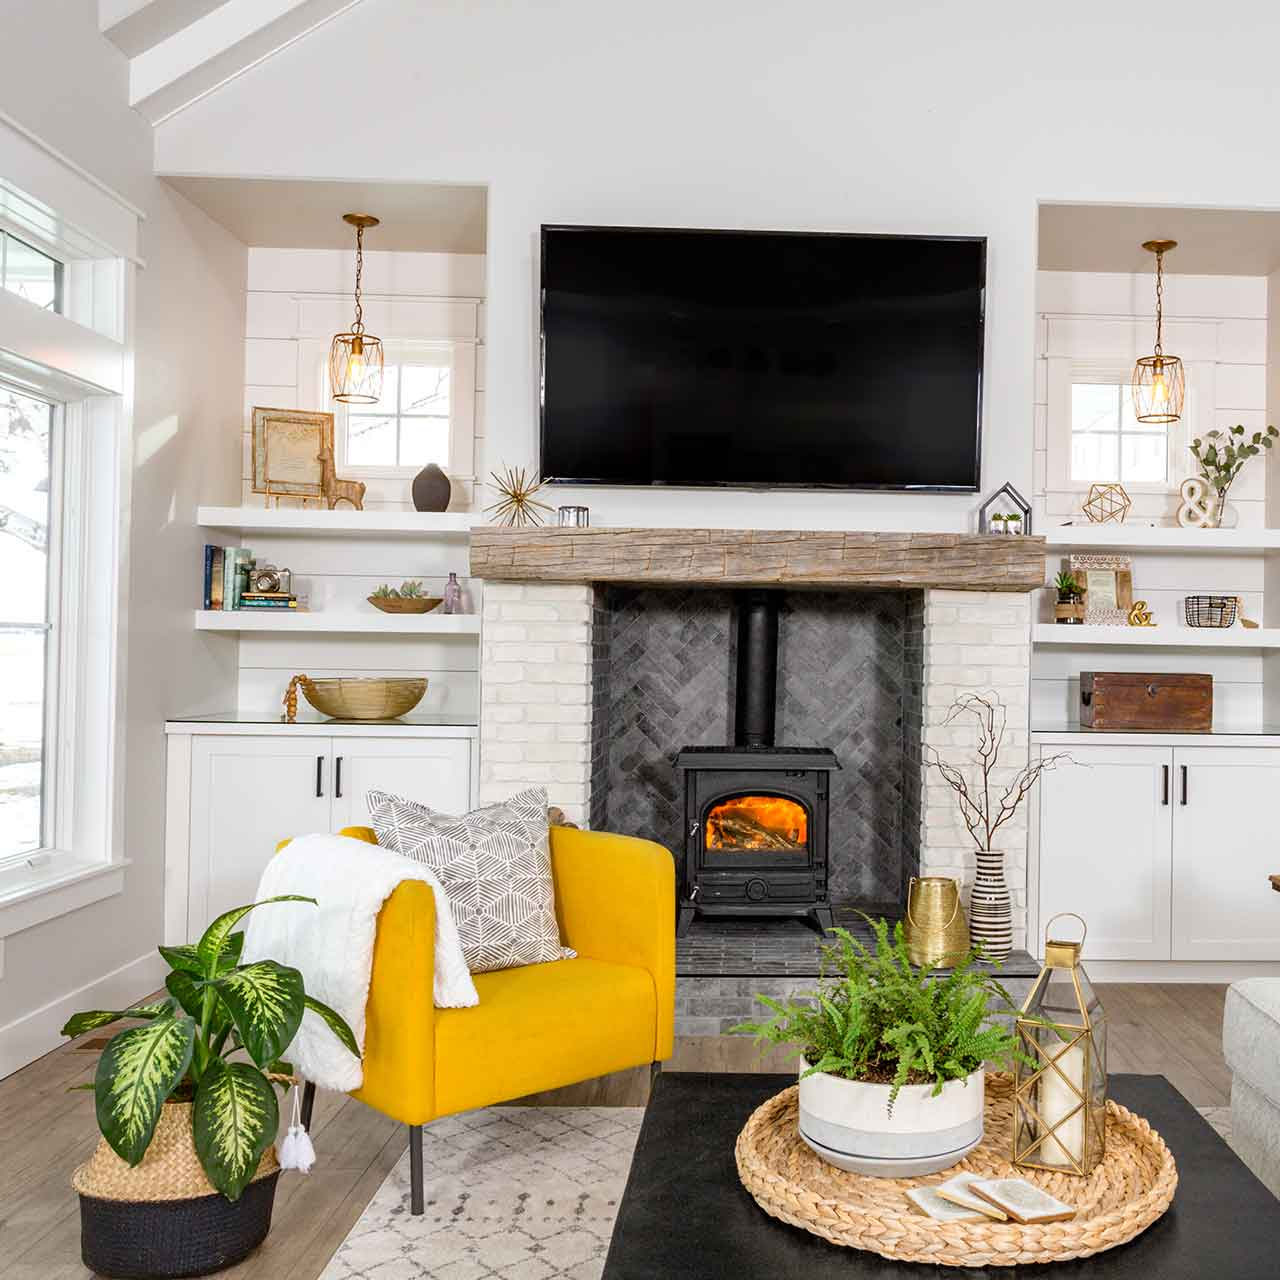 Farmhouse style living room interior designs with natural colours and organic material